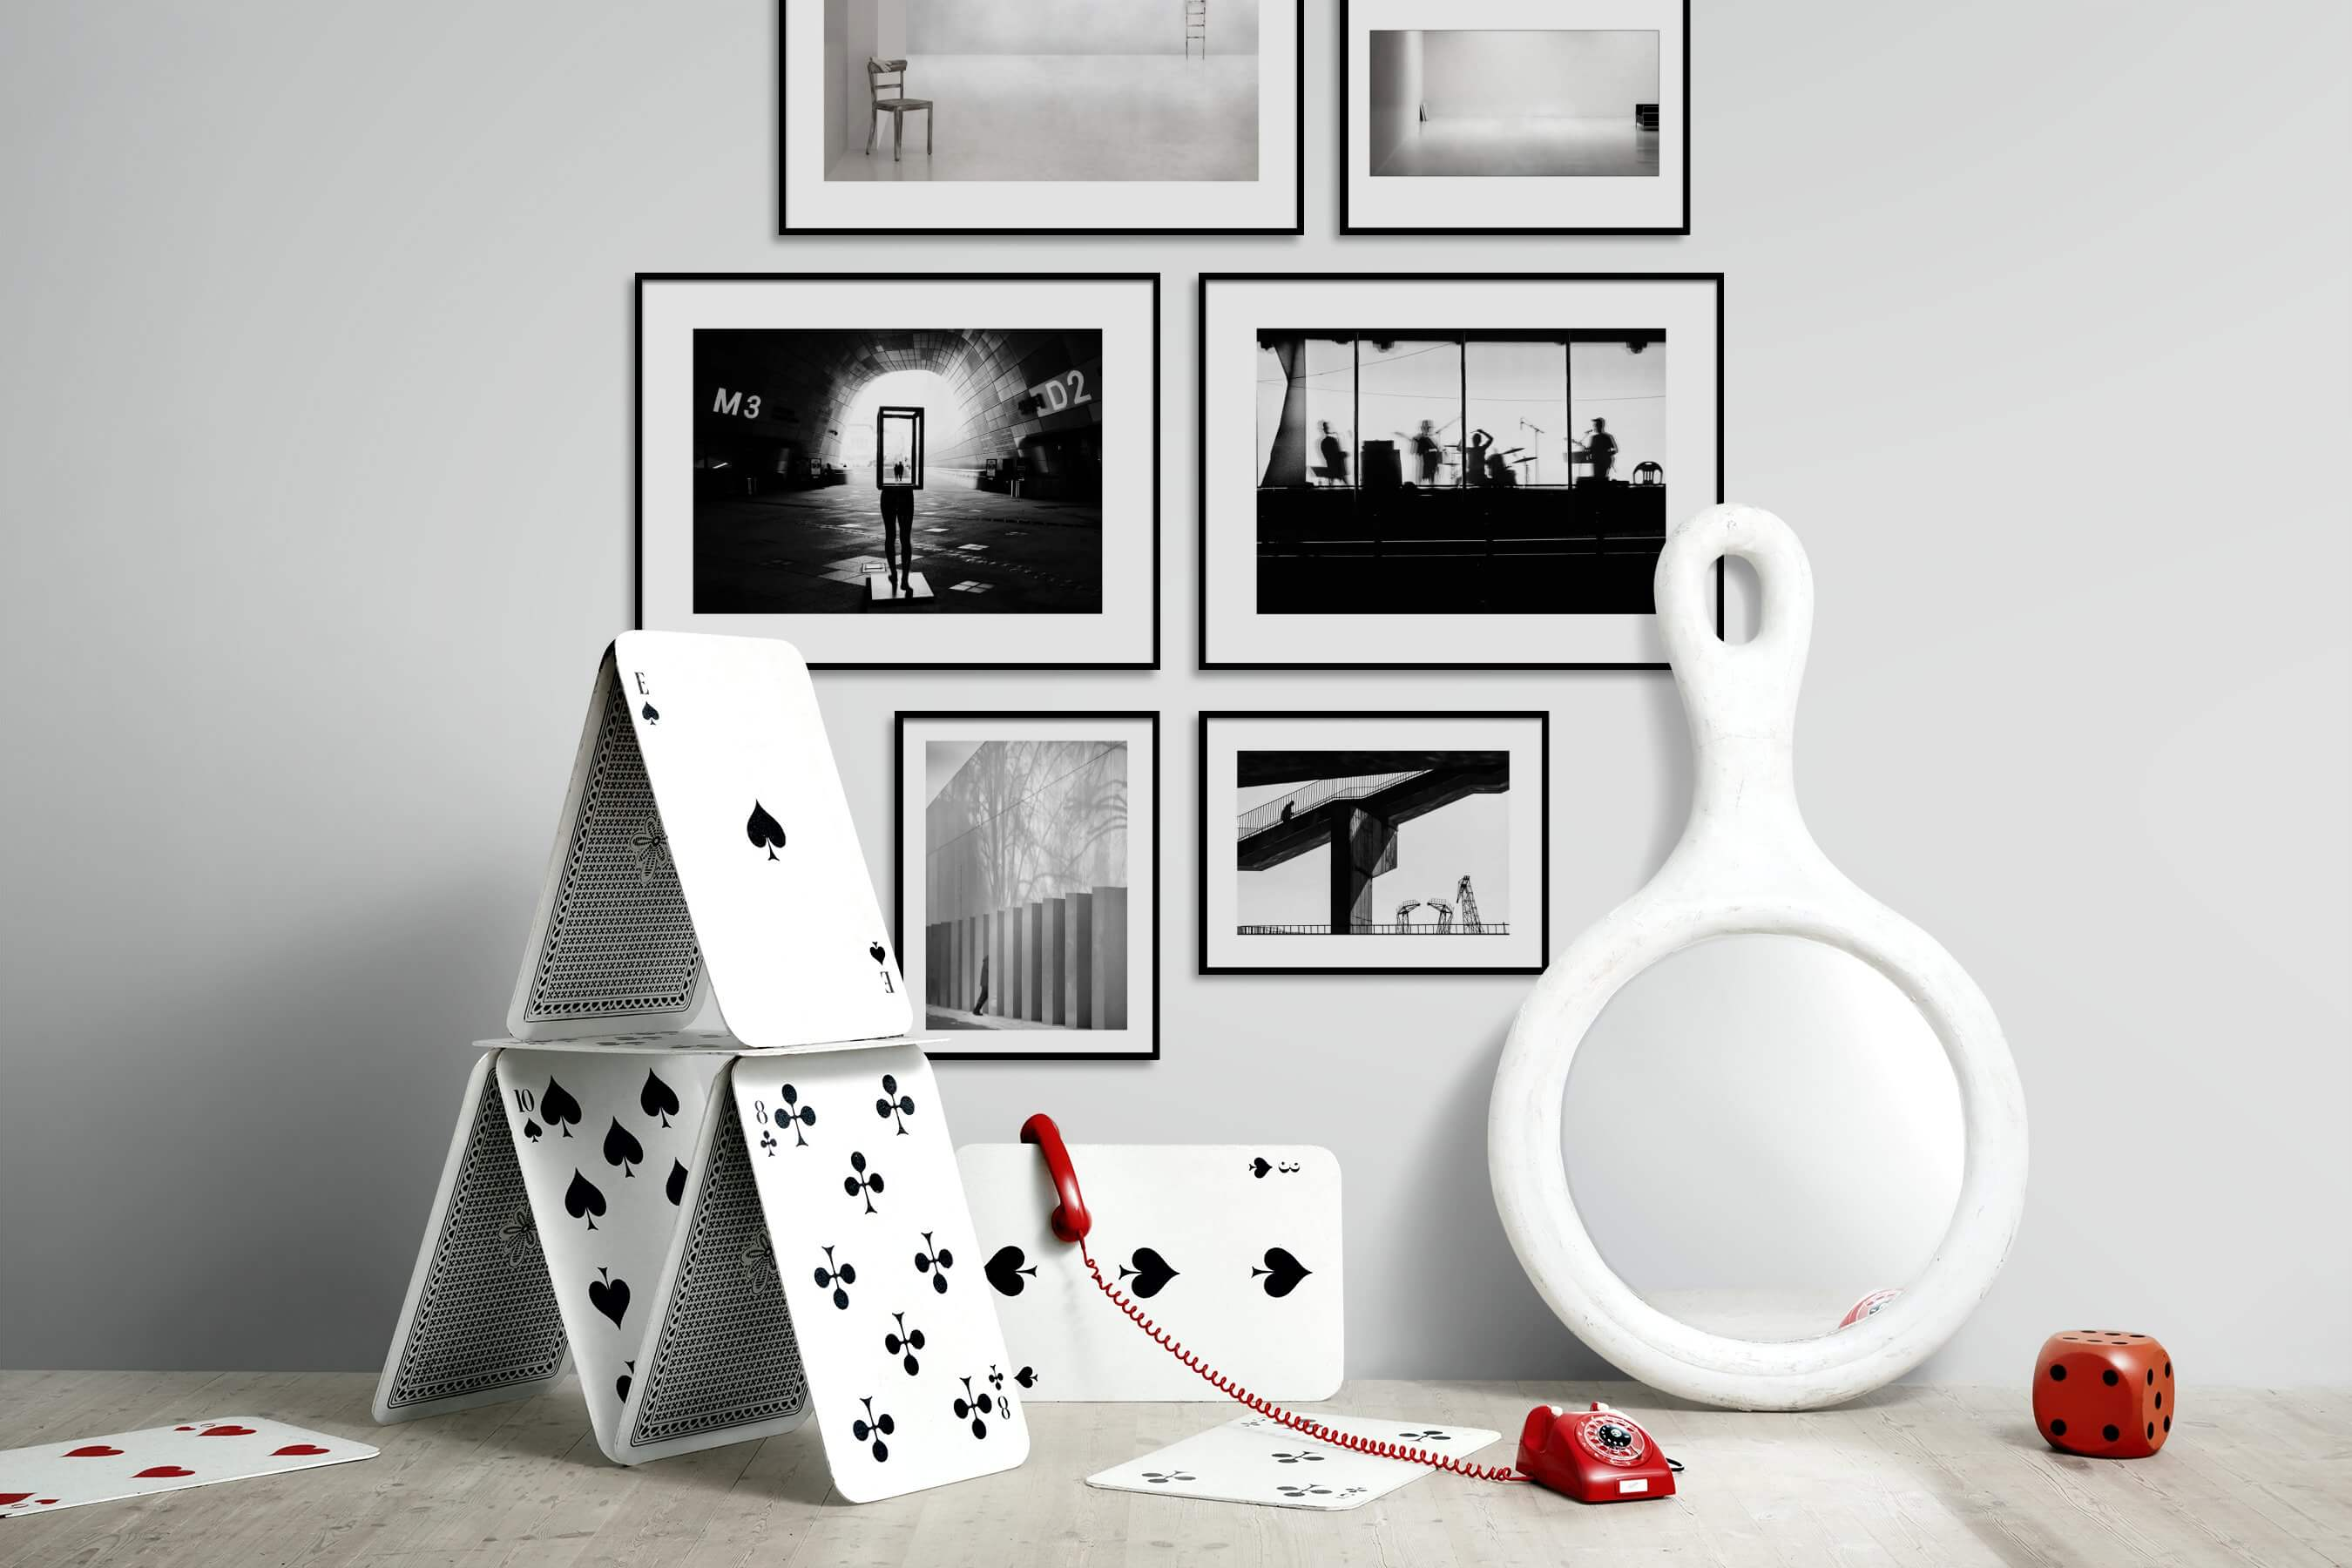 Gallery wall idea with six framed pictures arranged on a wall depicting For the Minimalist, Black & White, Artsy, City Life, and For the Moderate